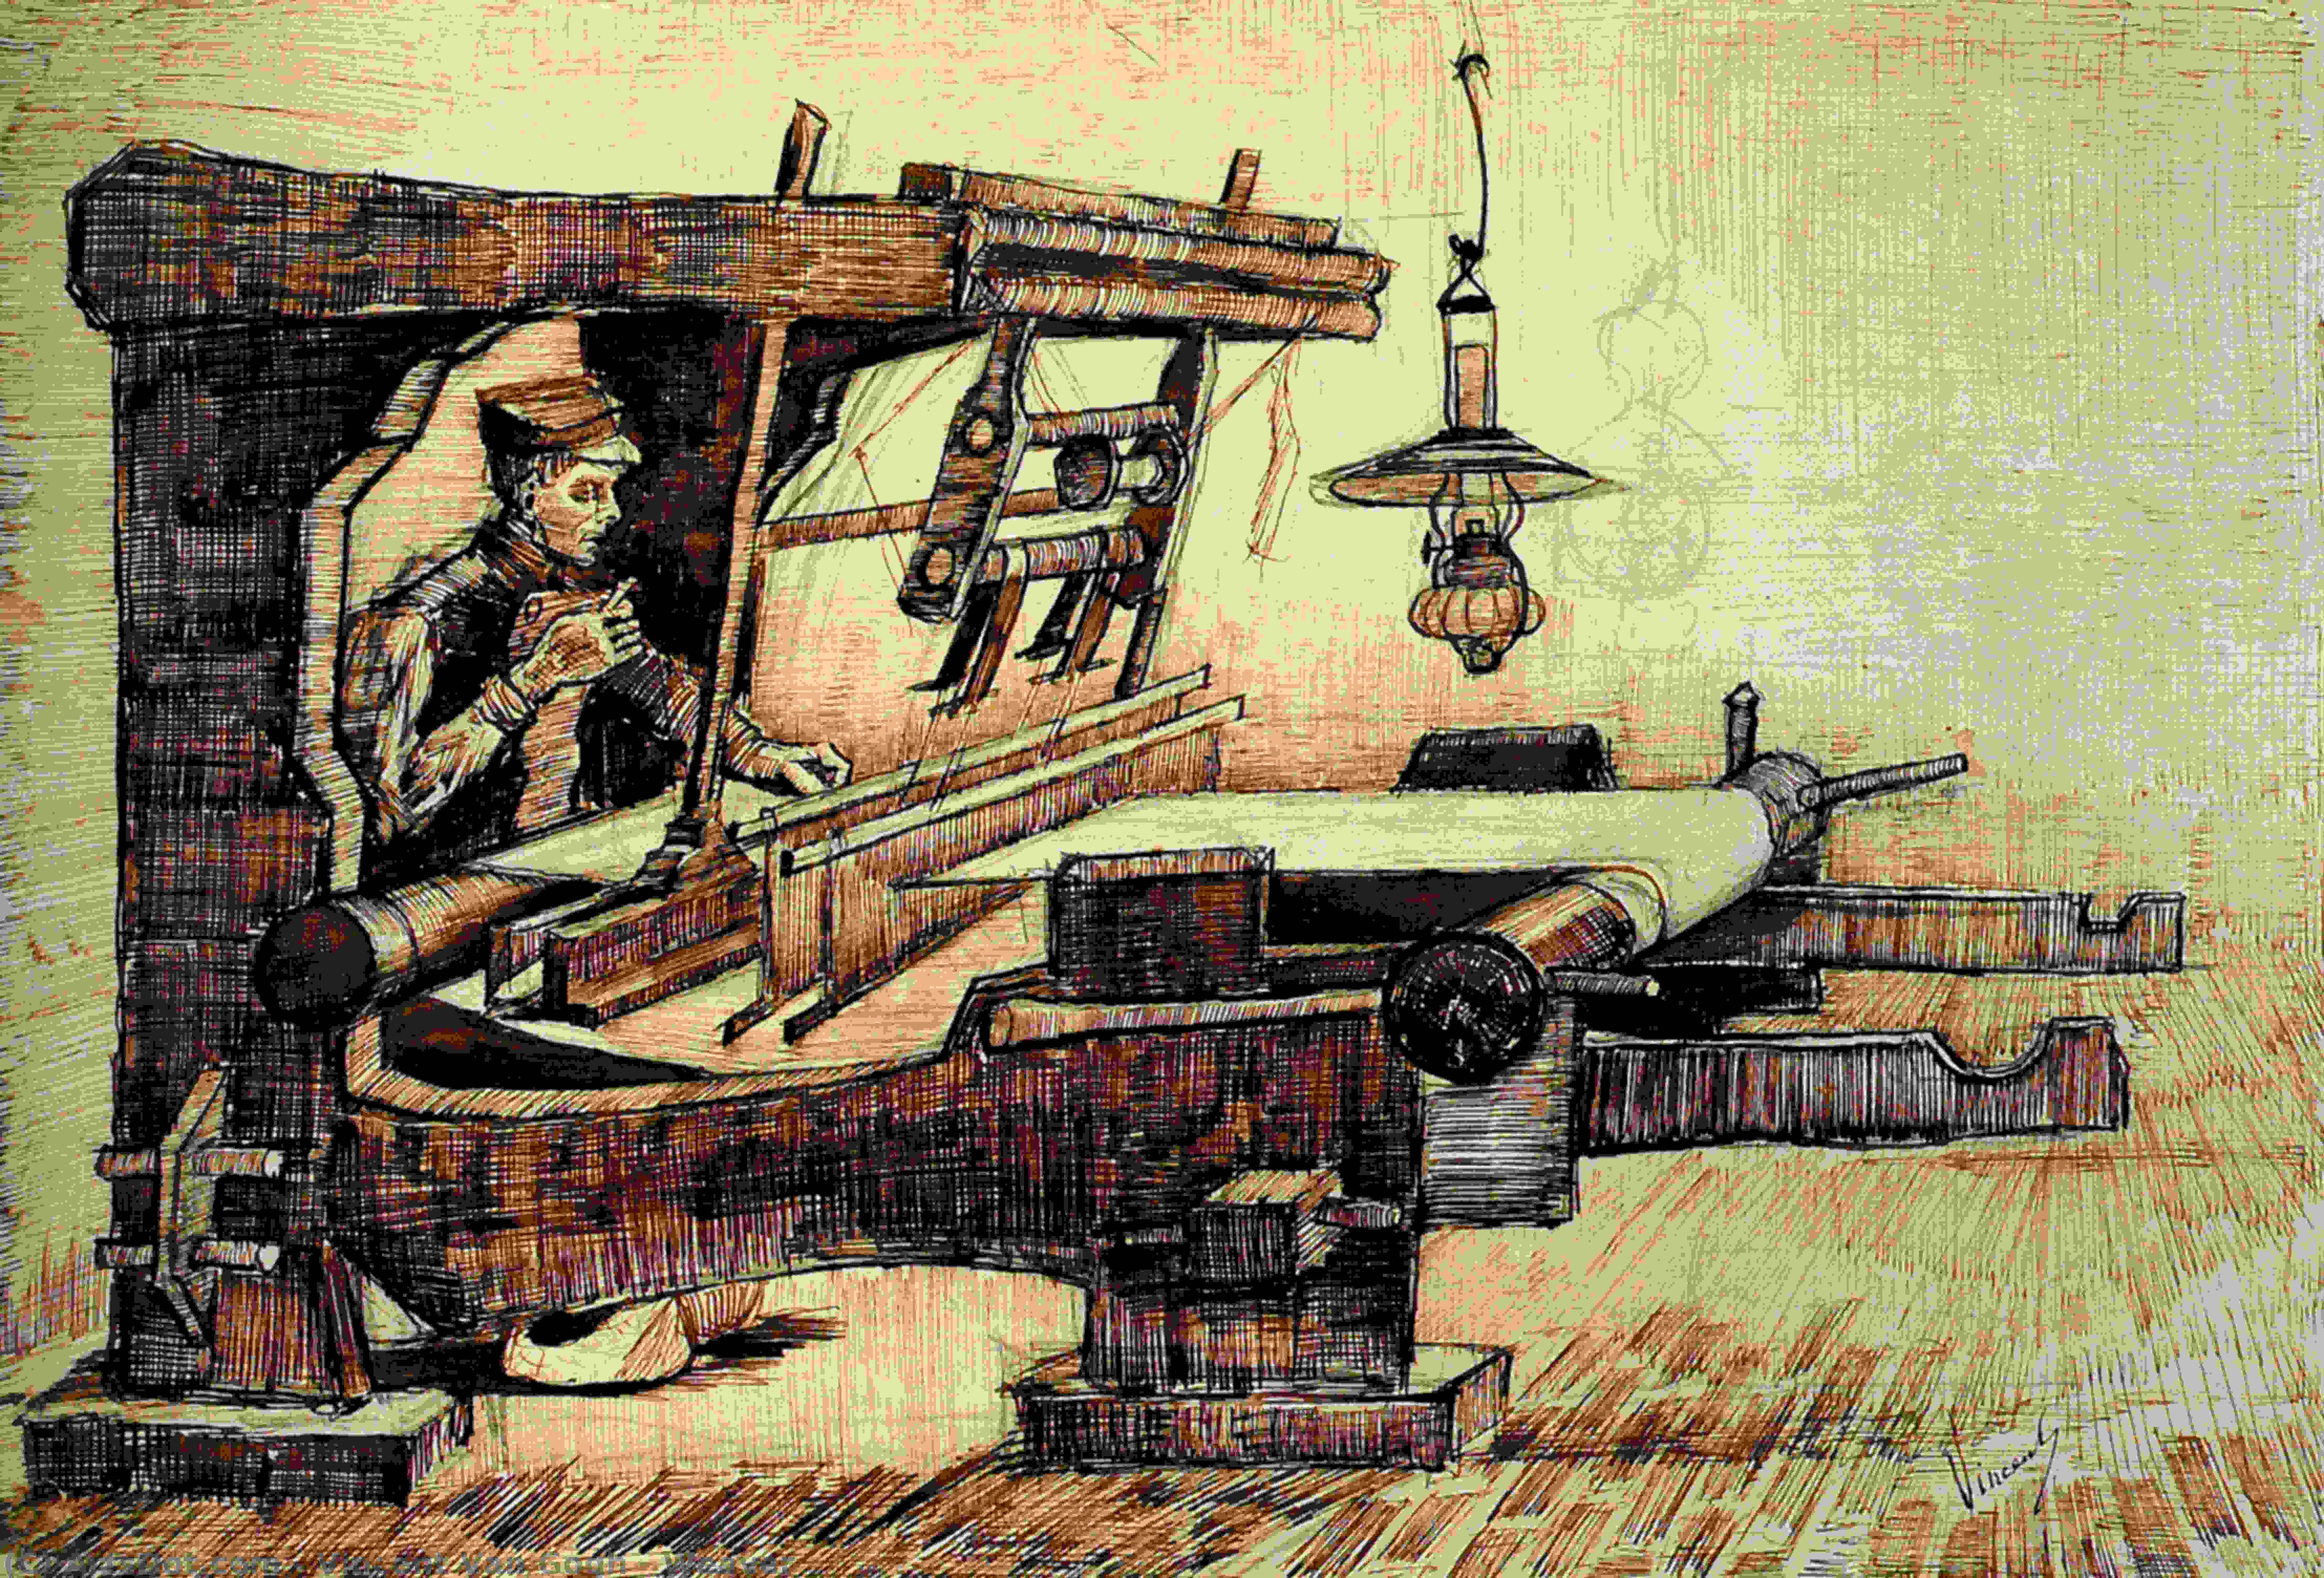 Wikioo.org - The Encyclopedia of Fine Arts - Painting, Artwork by Vincent Van Gogh - Weaver